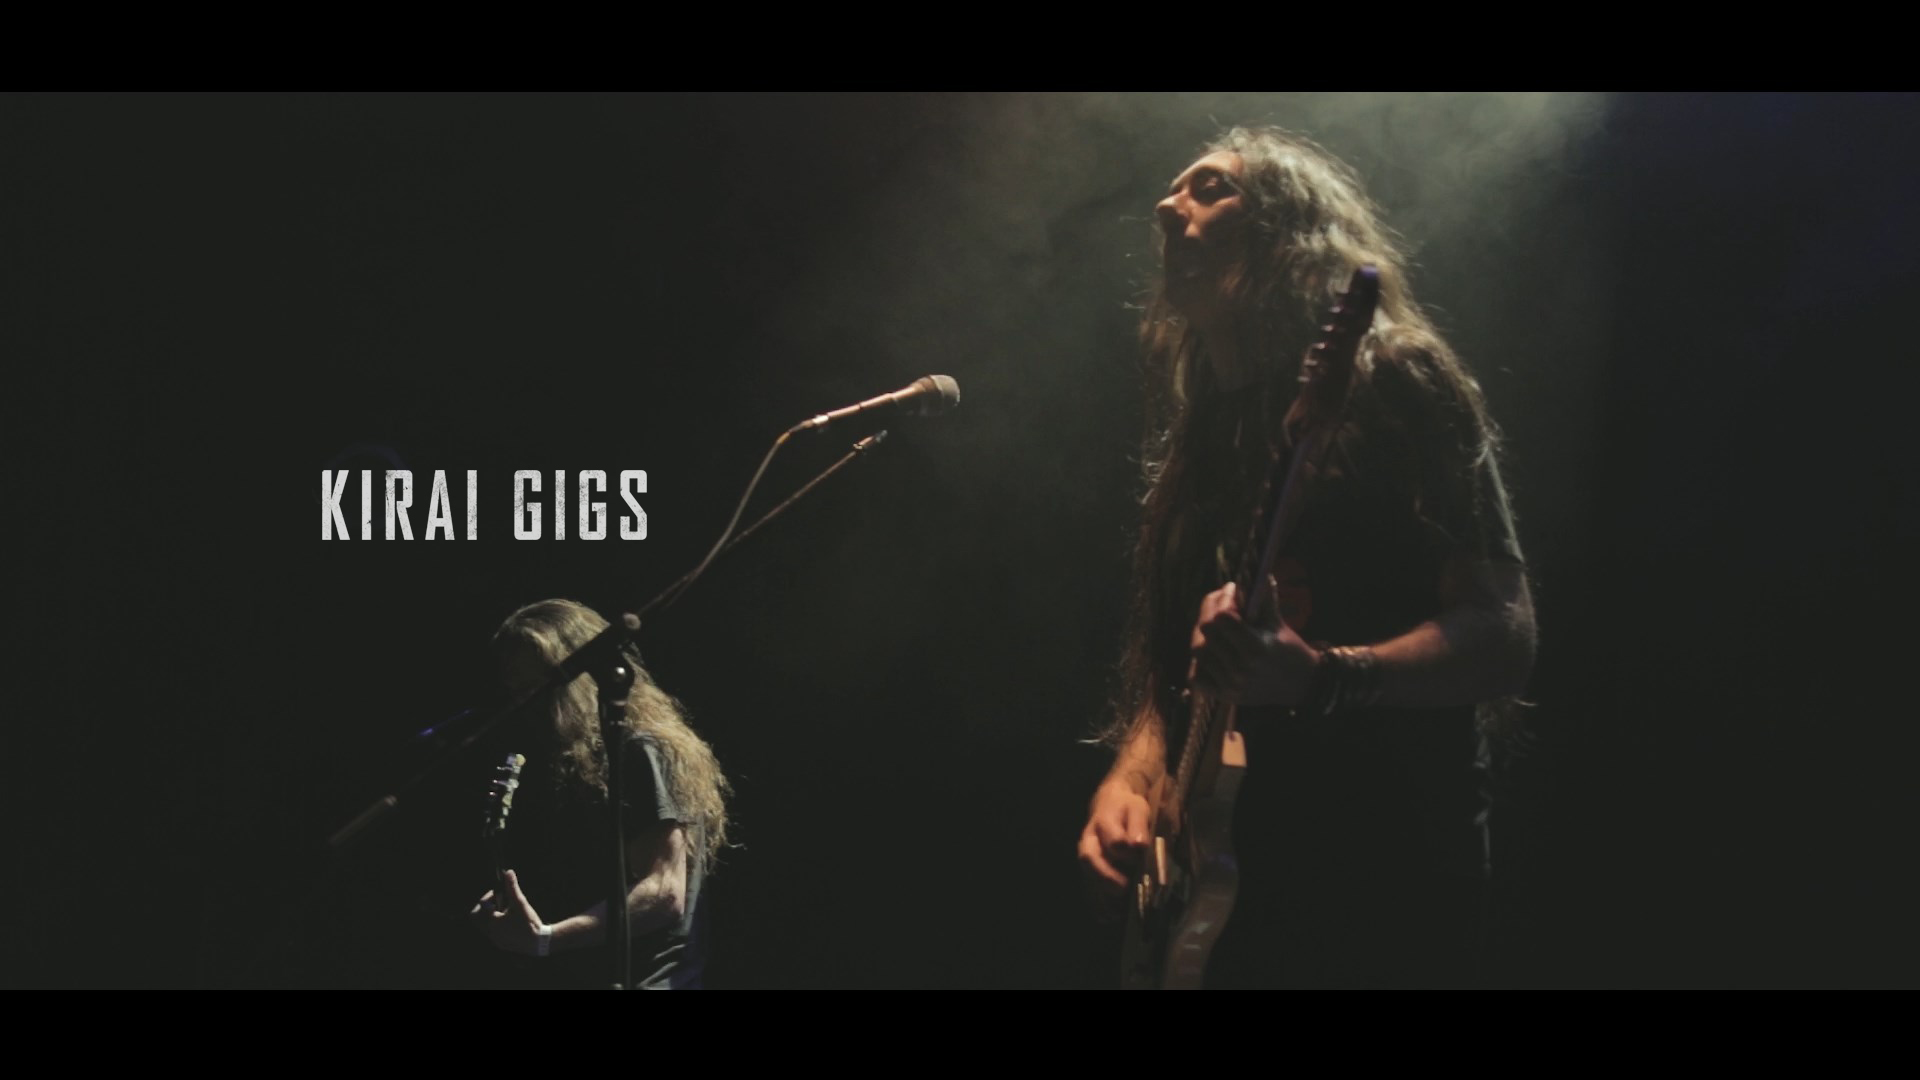 kirai gigs: concert photos & videos